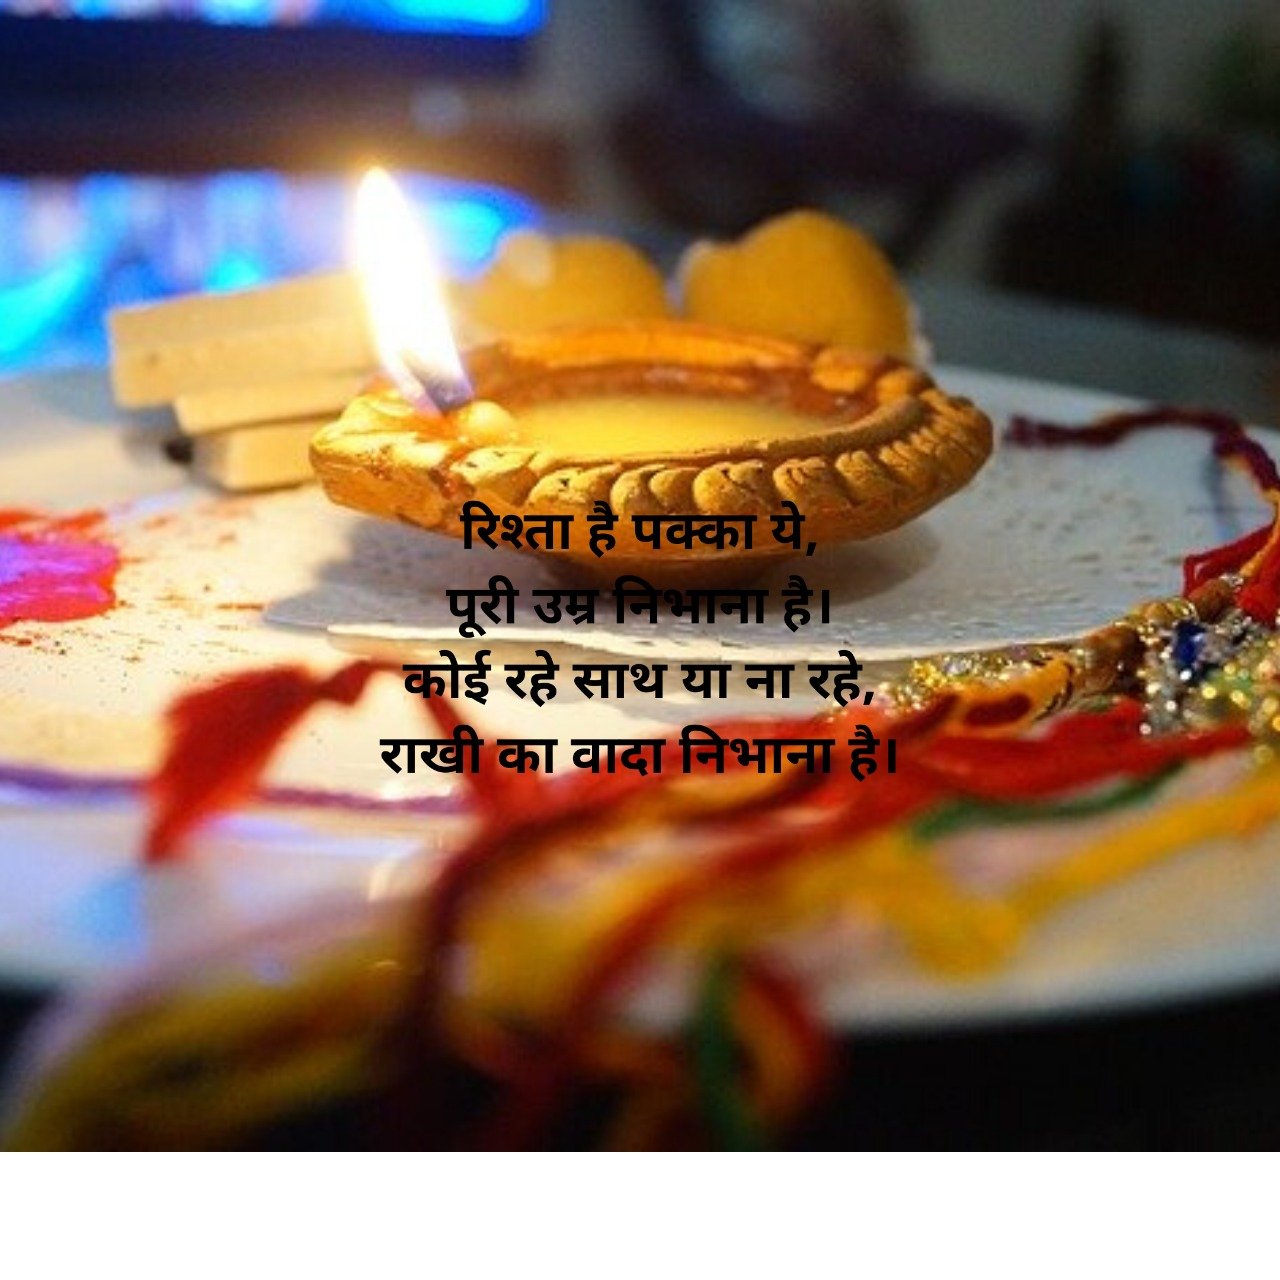 Rakshabandha-shayari-in-hindi